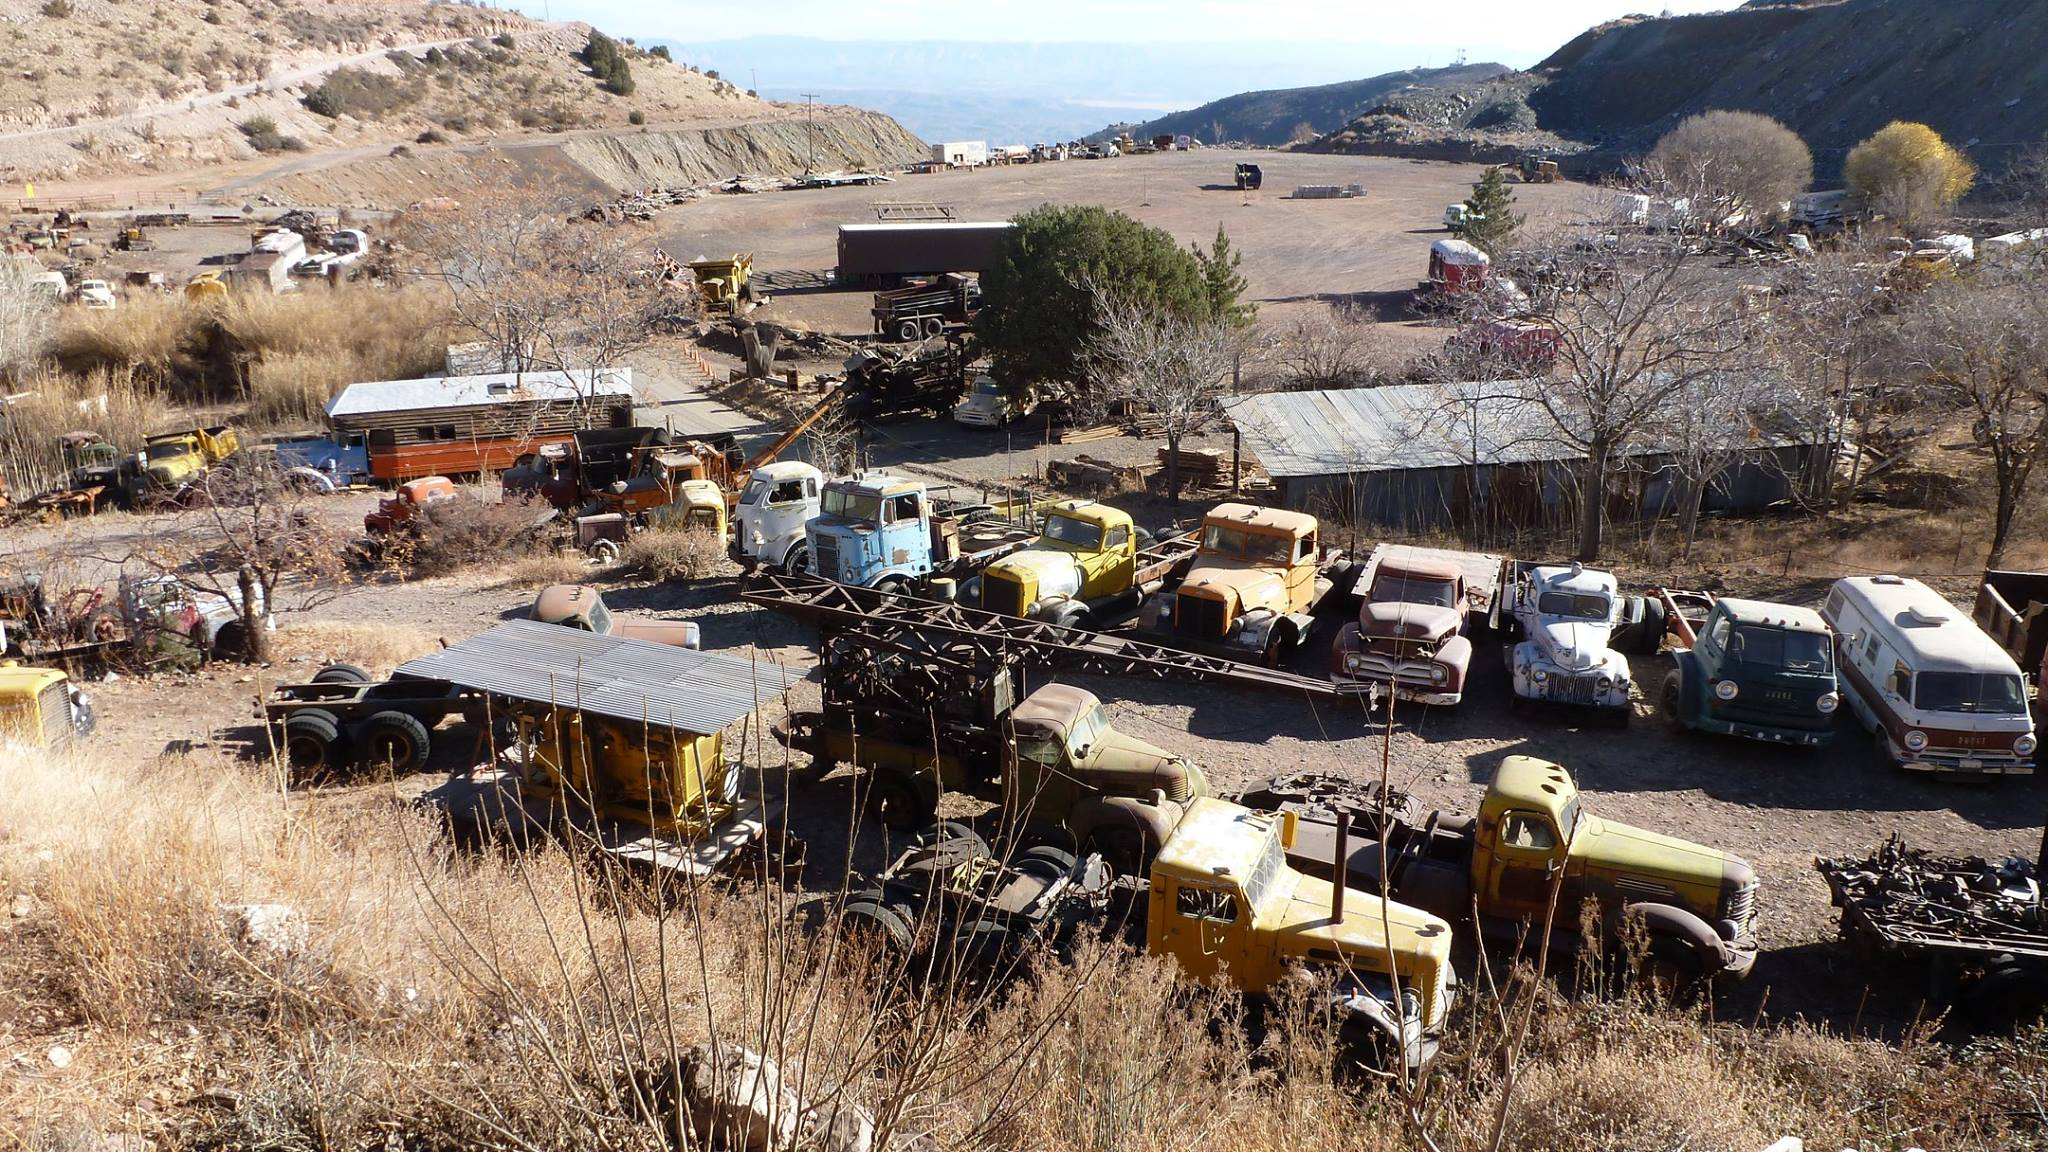 This-place-is-a-gold-mine-in-more-ways-than-one